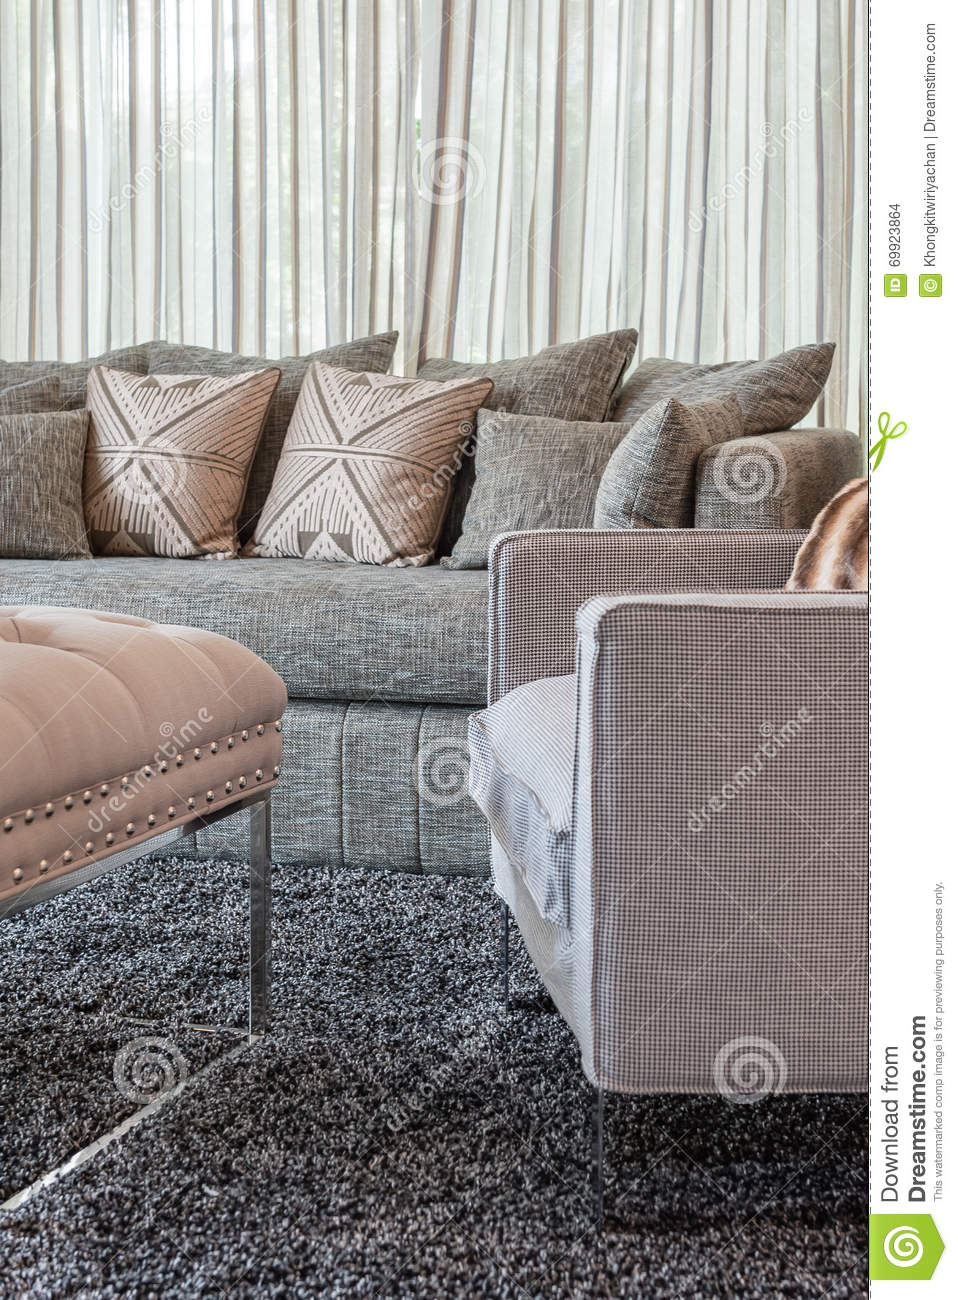 graues sofa mit kissen im modernen wohnzimmer stockfoto bild 69923864. Black Bedroom Furniture Sets. Home Design Ideas